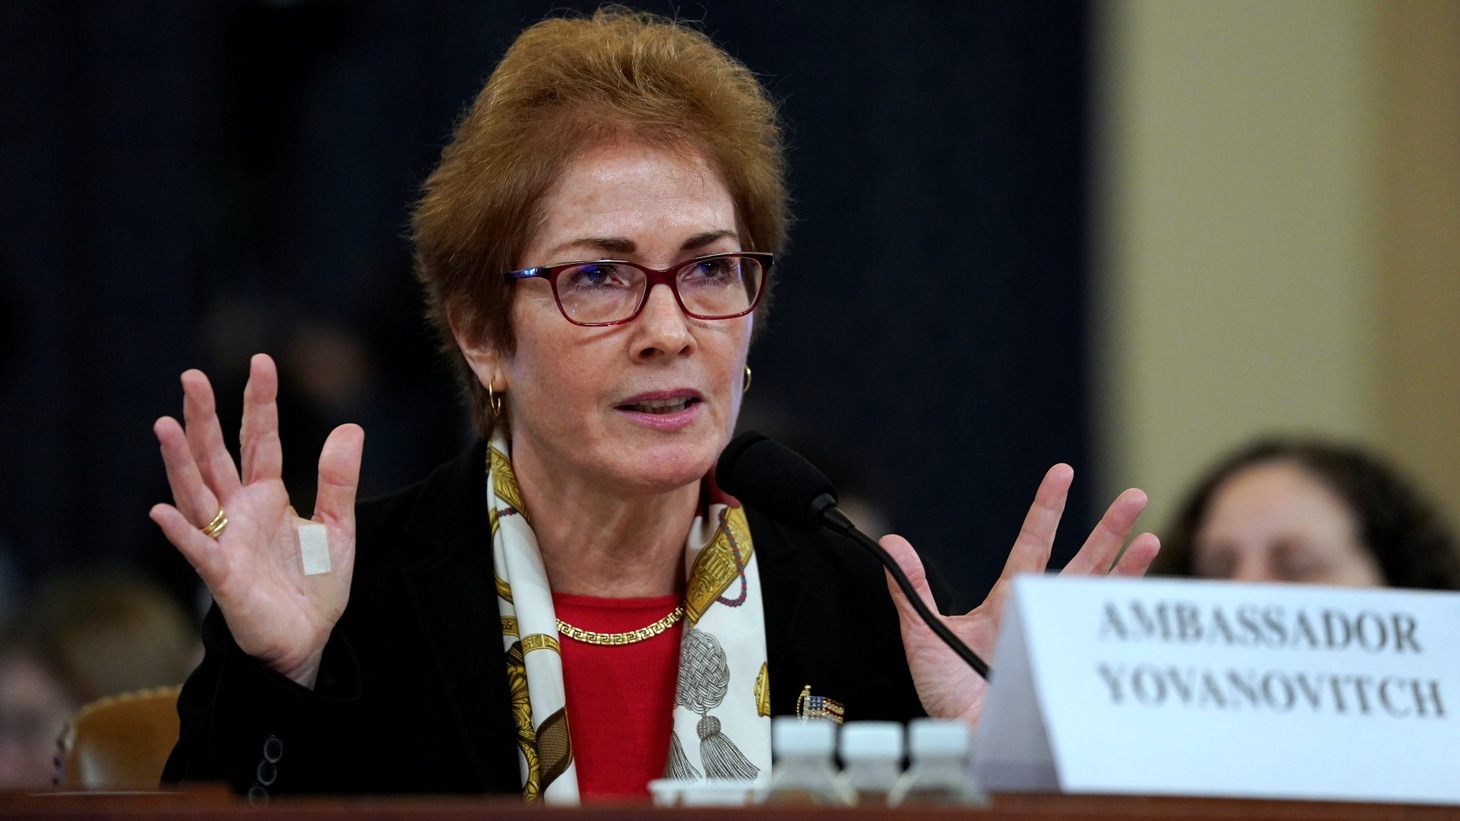 Marie Yovanovitch, former U.S. ambassador to Ukraine, testifies before a House Intelligence Committee hearing as part of the impeachment inquiry into U.S. President Donald Trump on Capitol Hill in Washington, U.S., November 15, 2019.